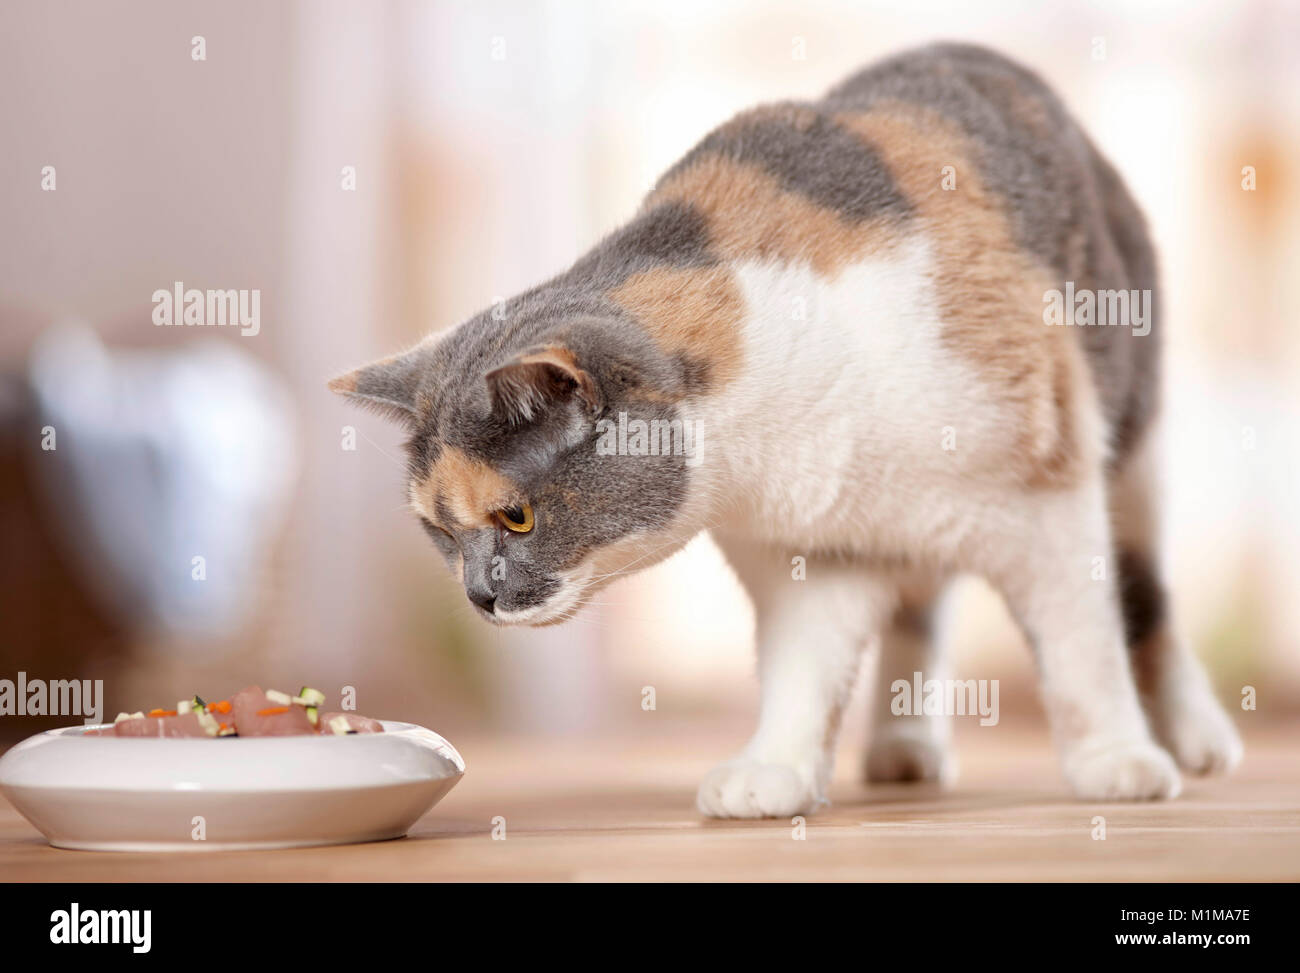 British Shorthair. Adult examining raw meat and vegetables (BARF) in its food bowl. Germany - Stock Image